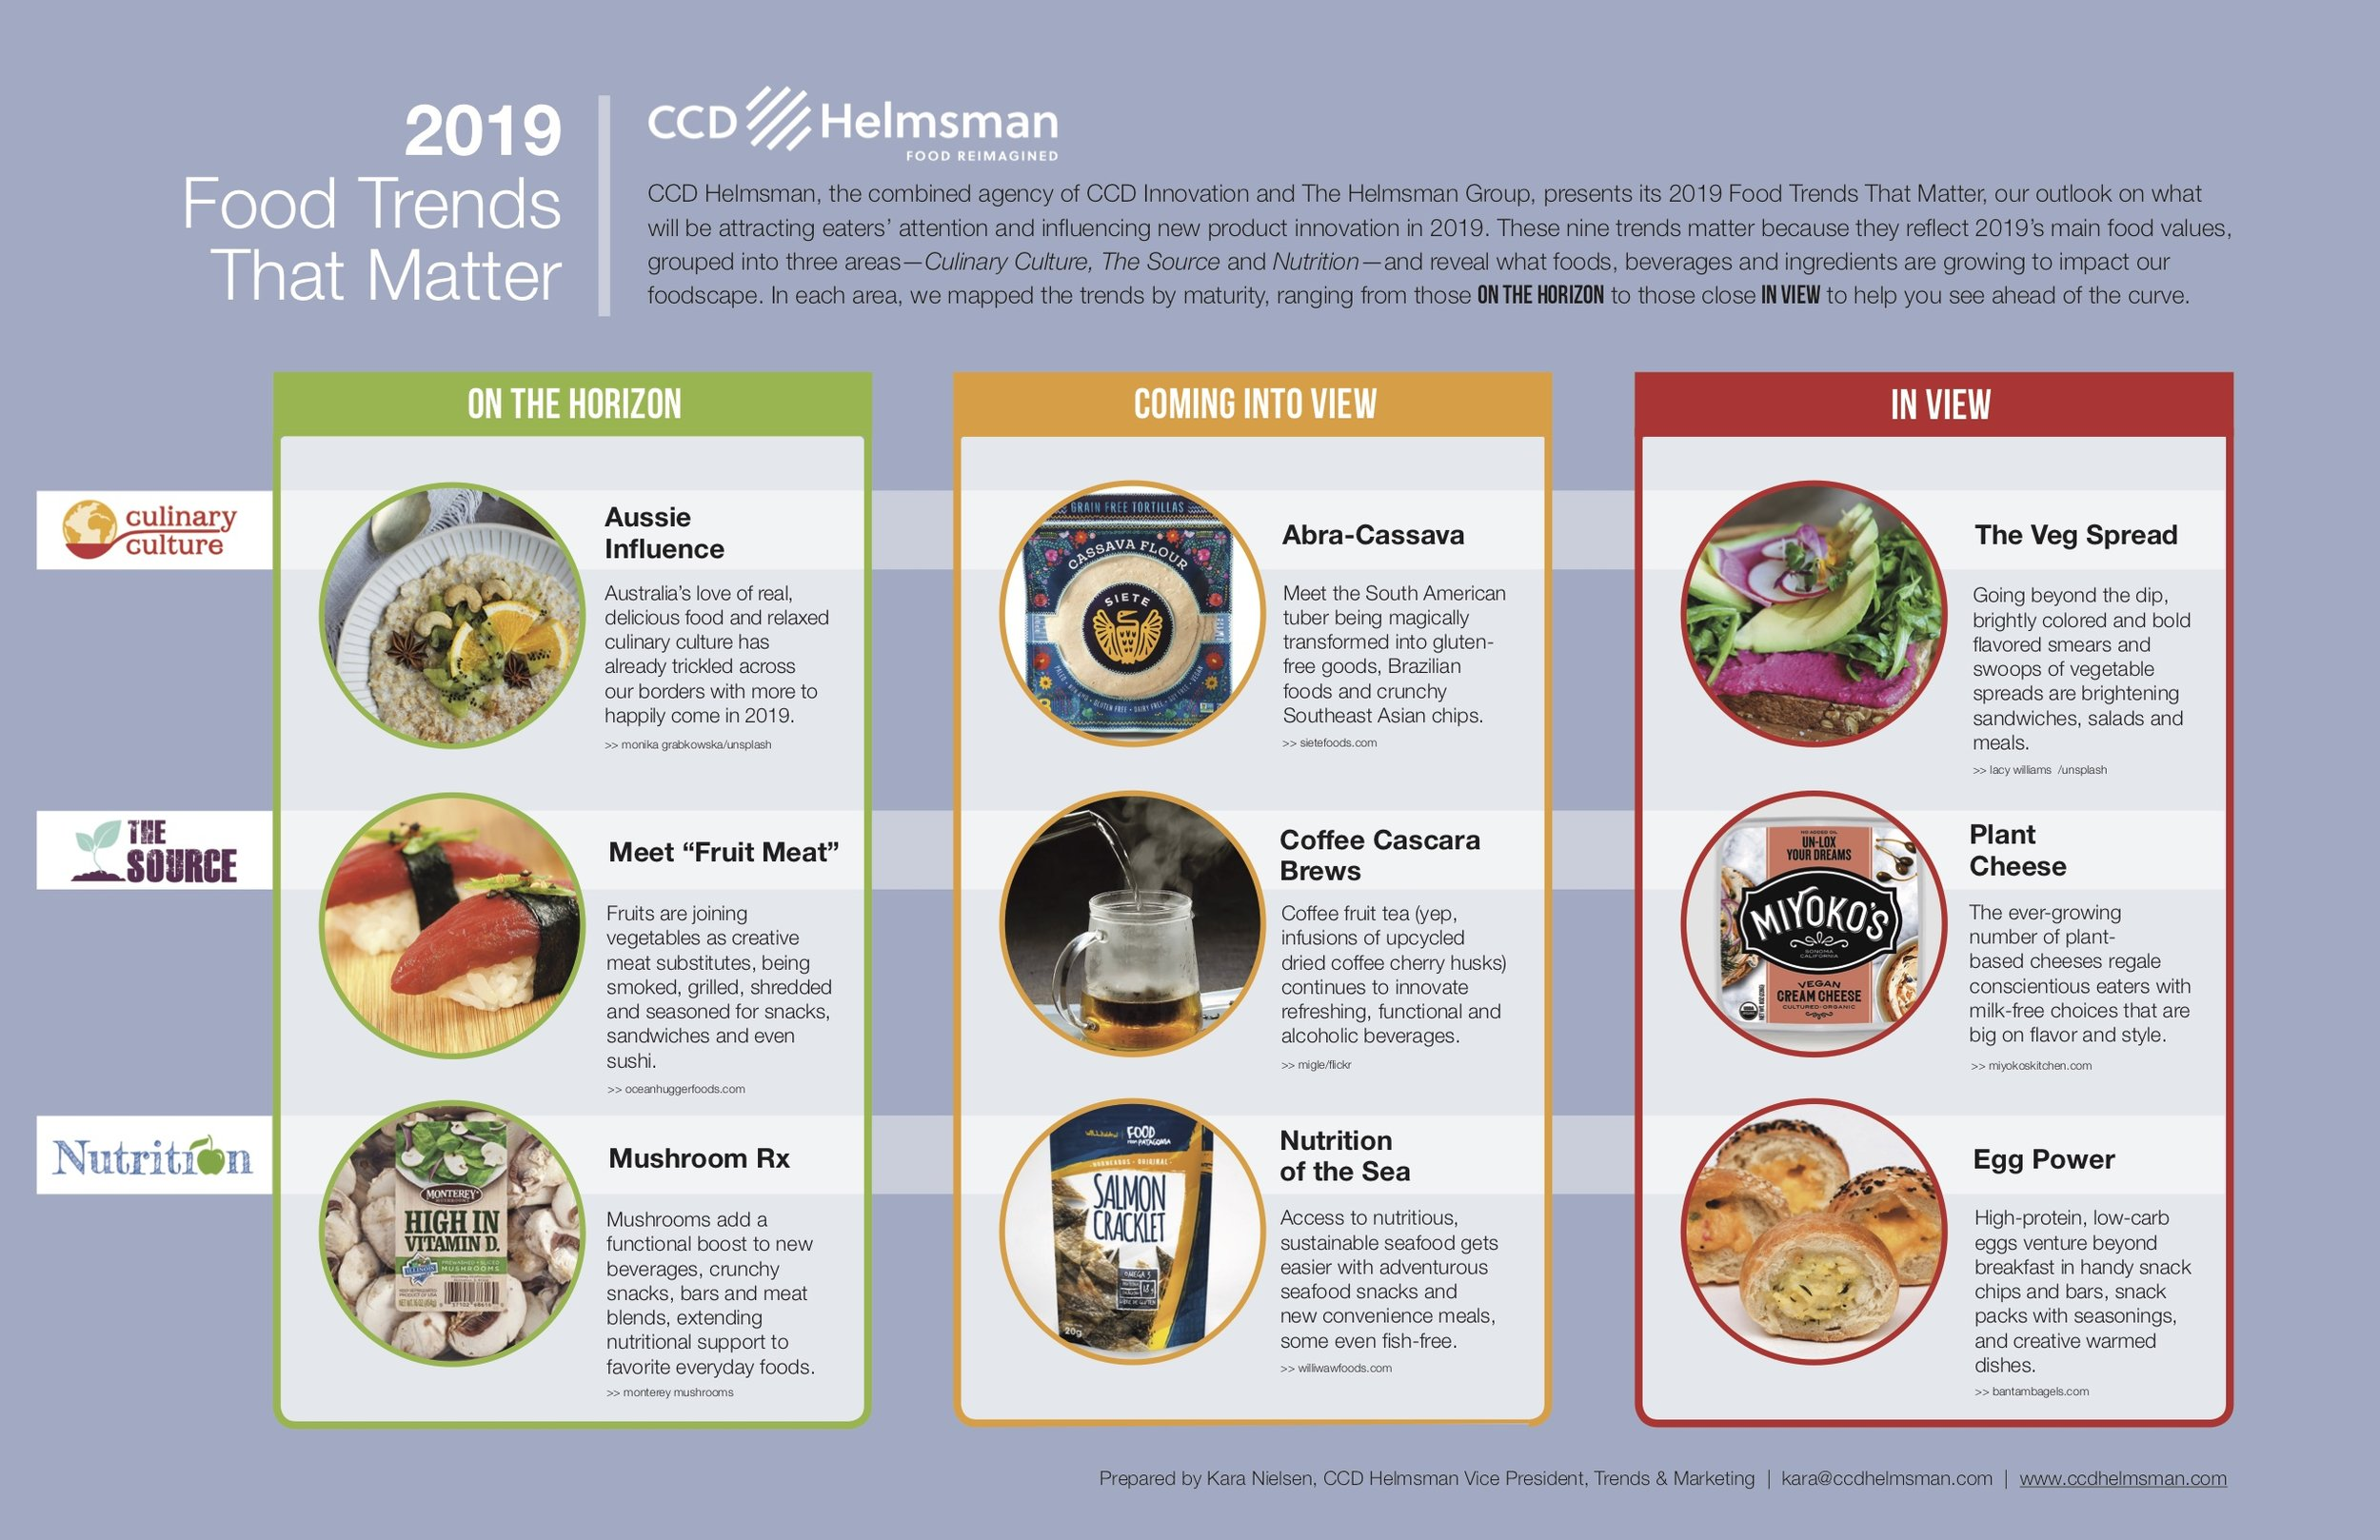 2019 CCDH Food Trends image.jpg